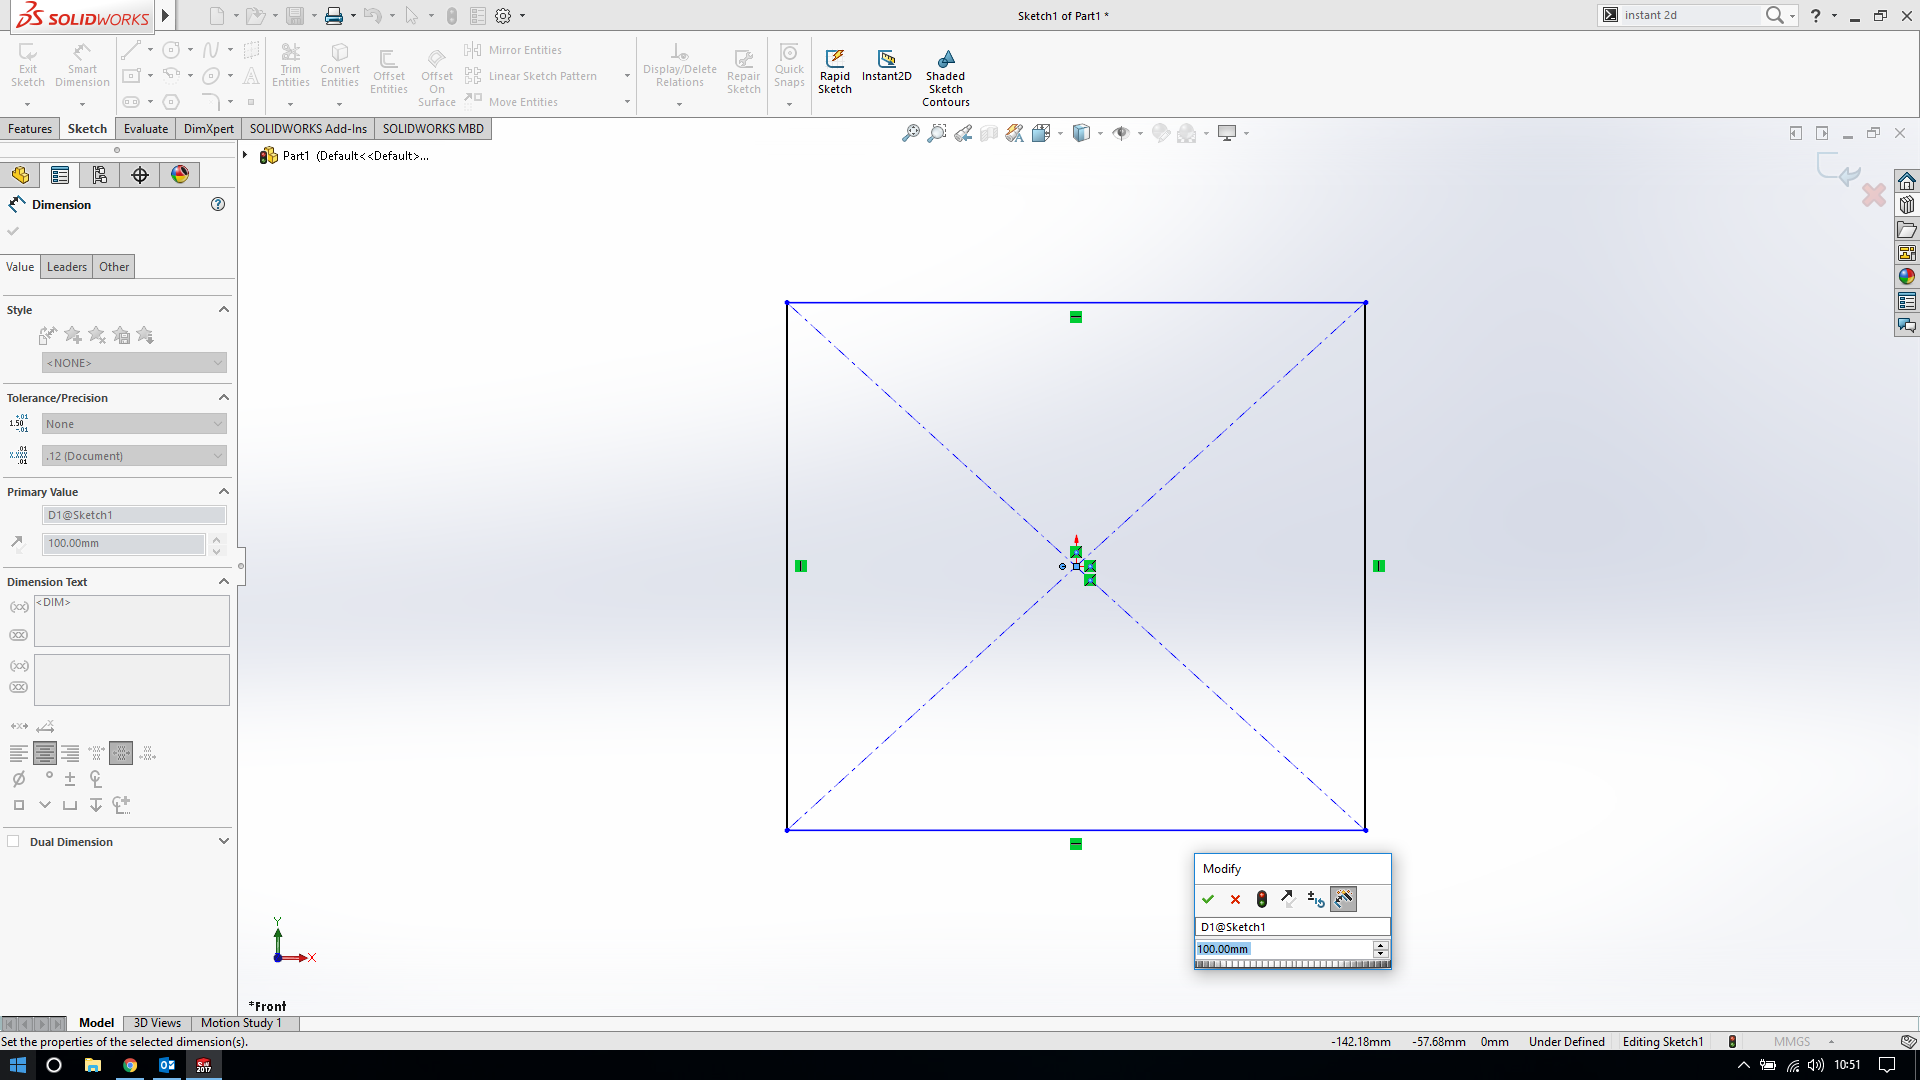 Missing sketch dimensions in Solidworks | GrabCAD Questions